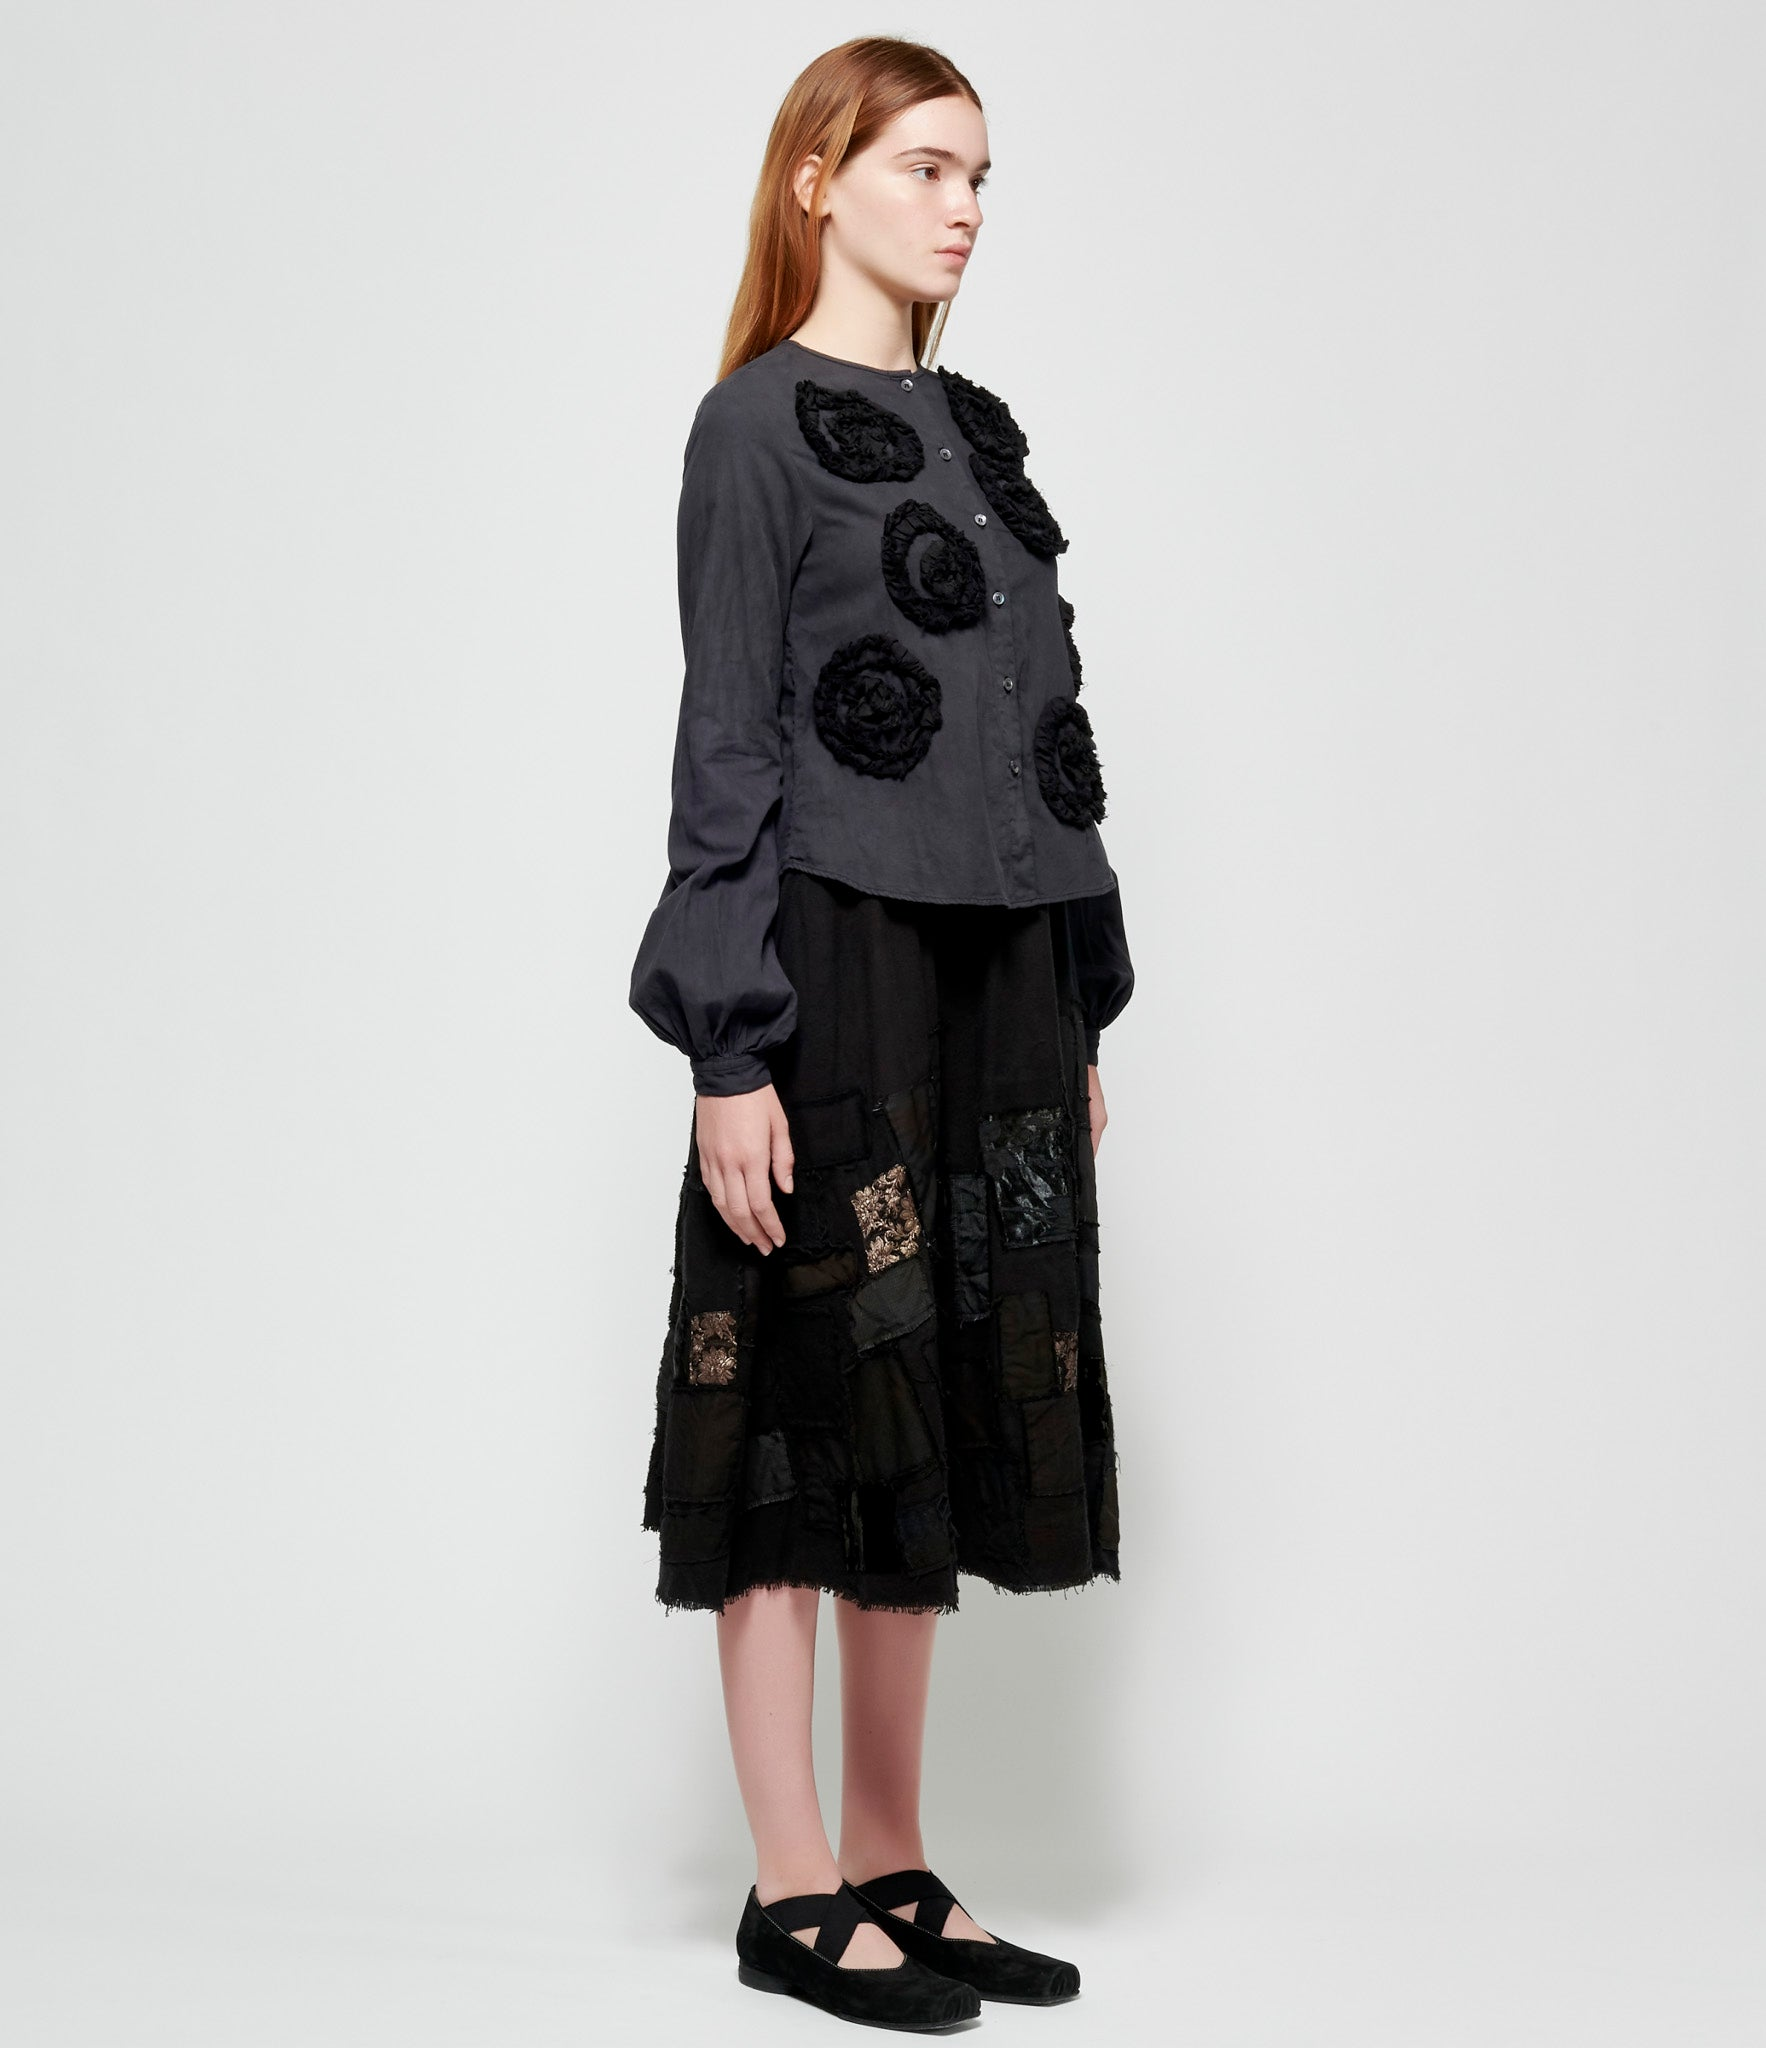 PHOS PHORO Floral Applique Black Bell Sleeve Shirt